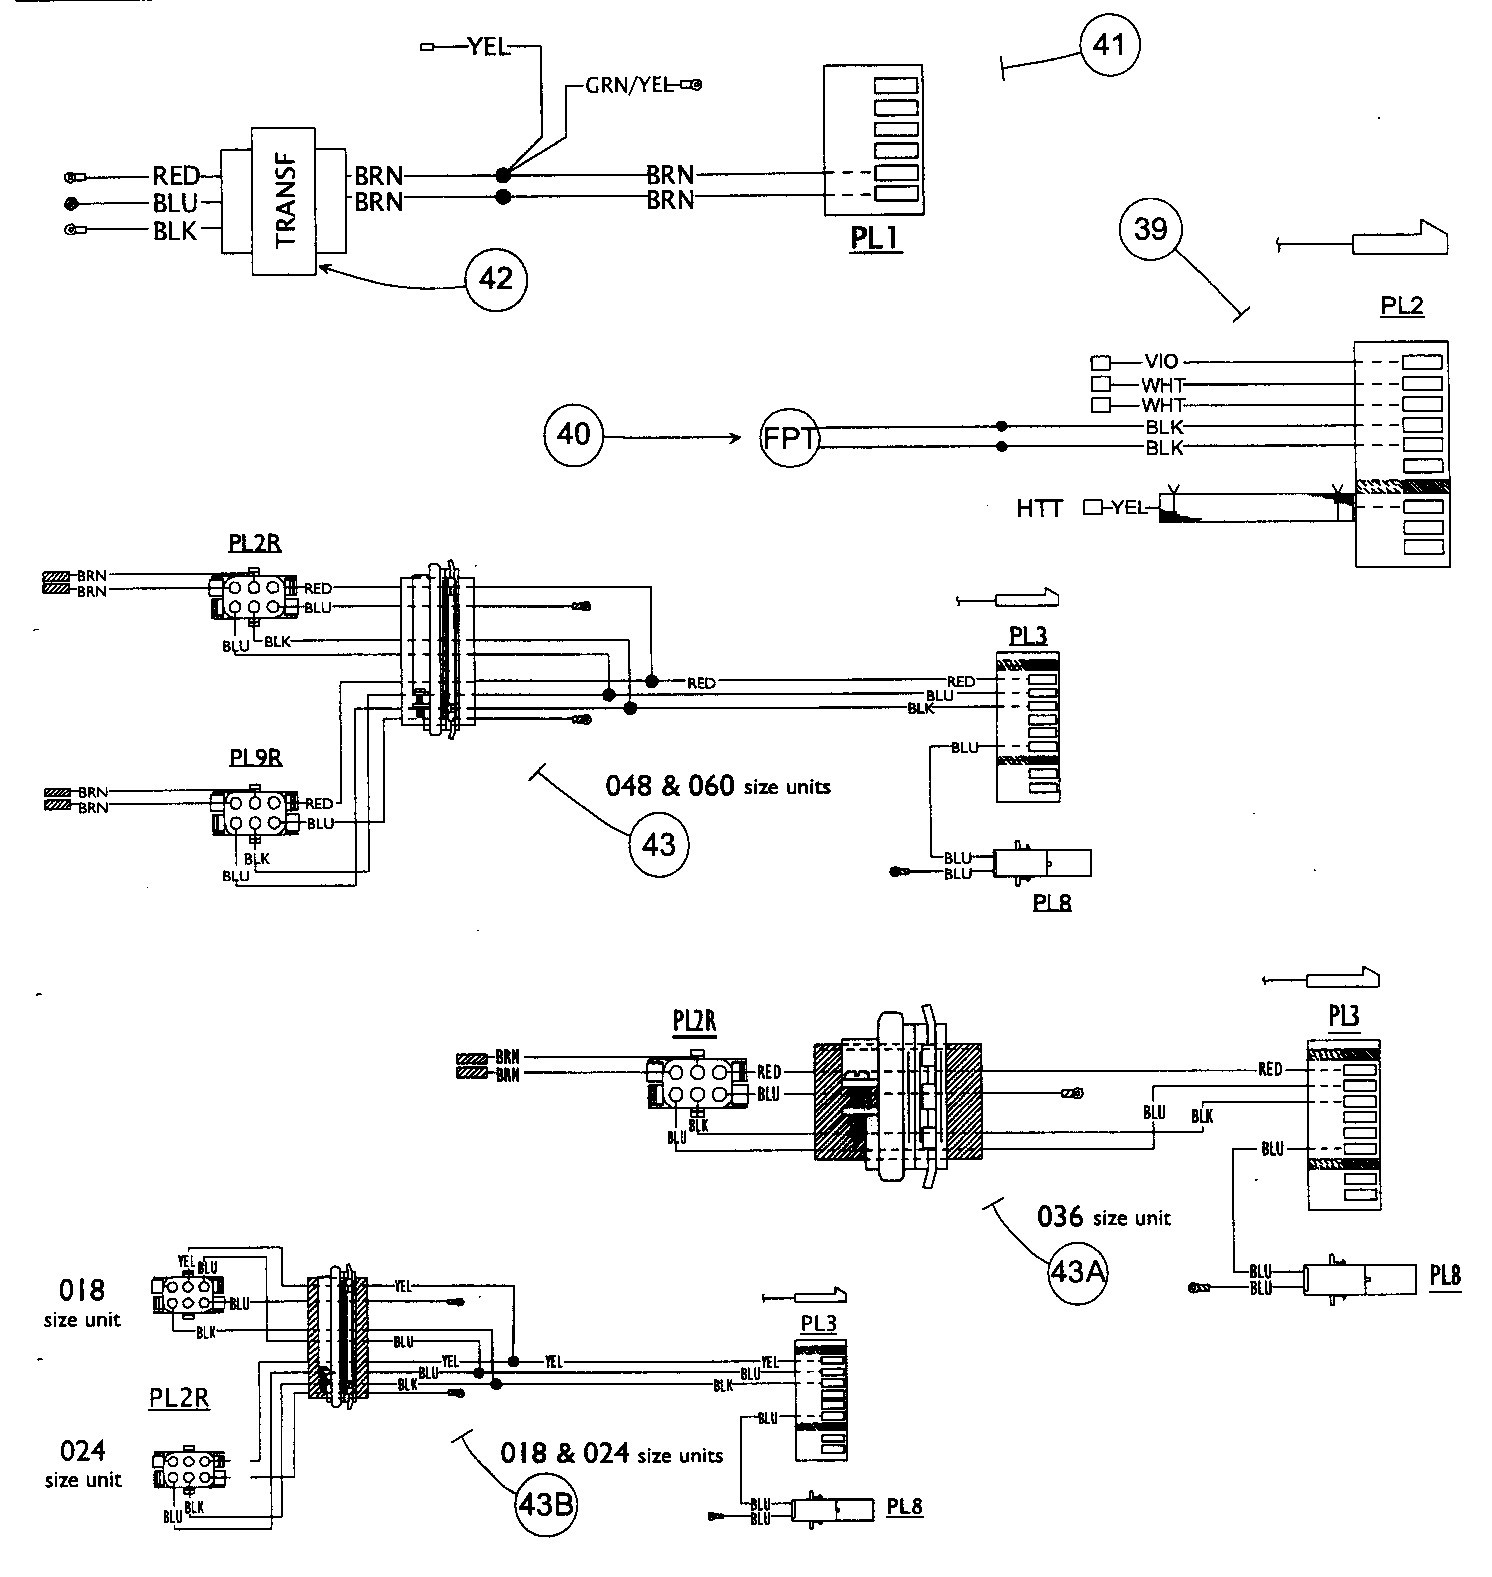 Carrier air conditioner wiring diagram gallery